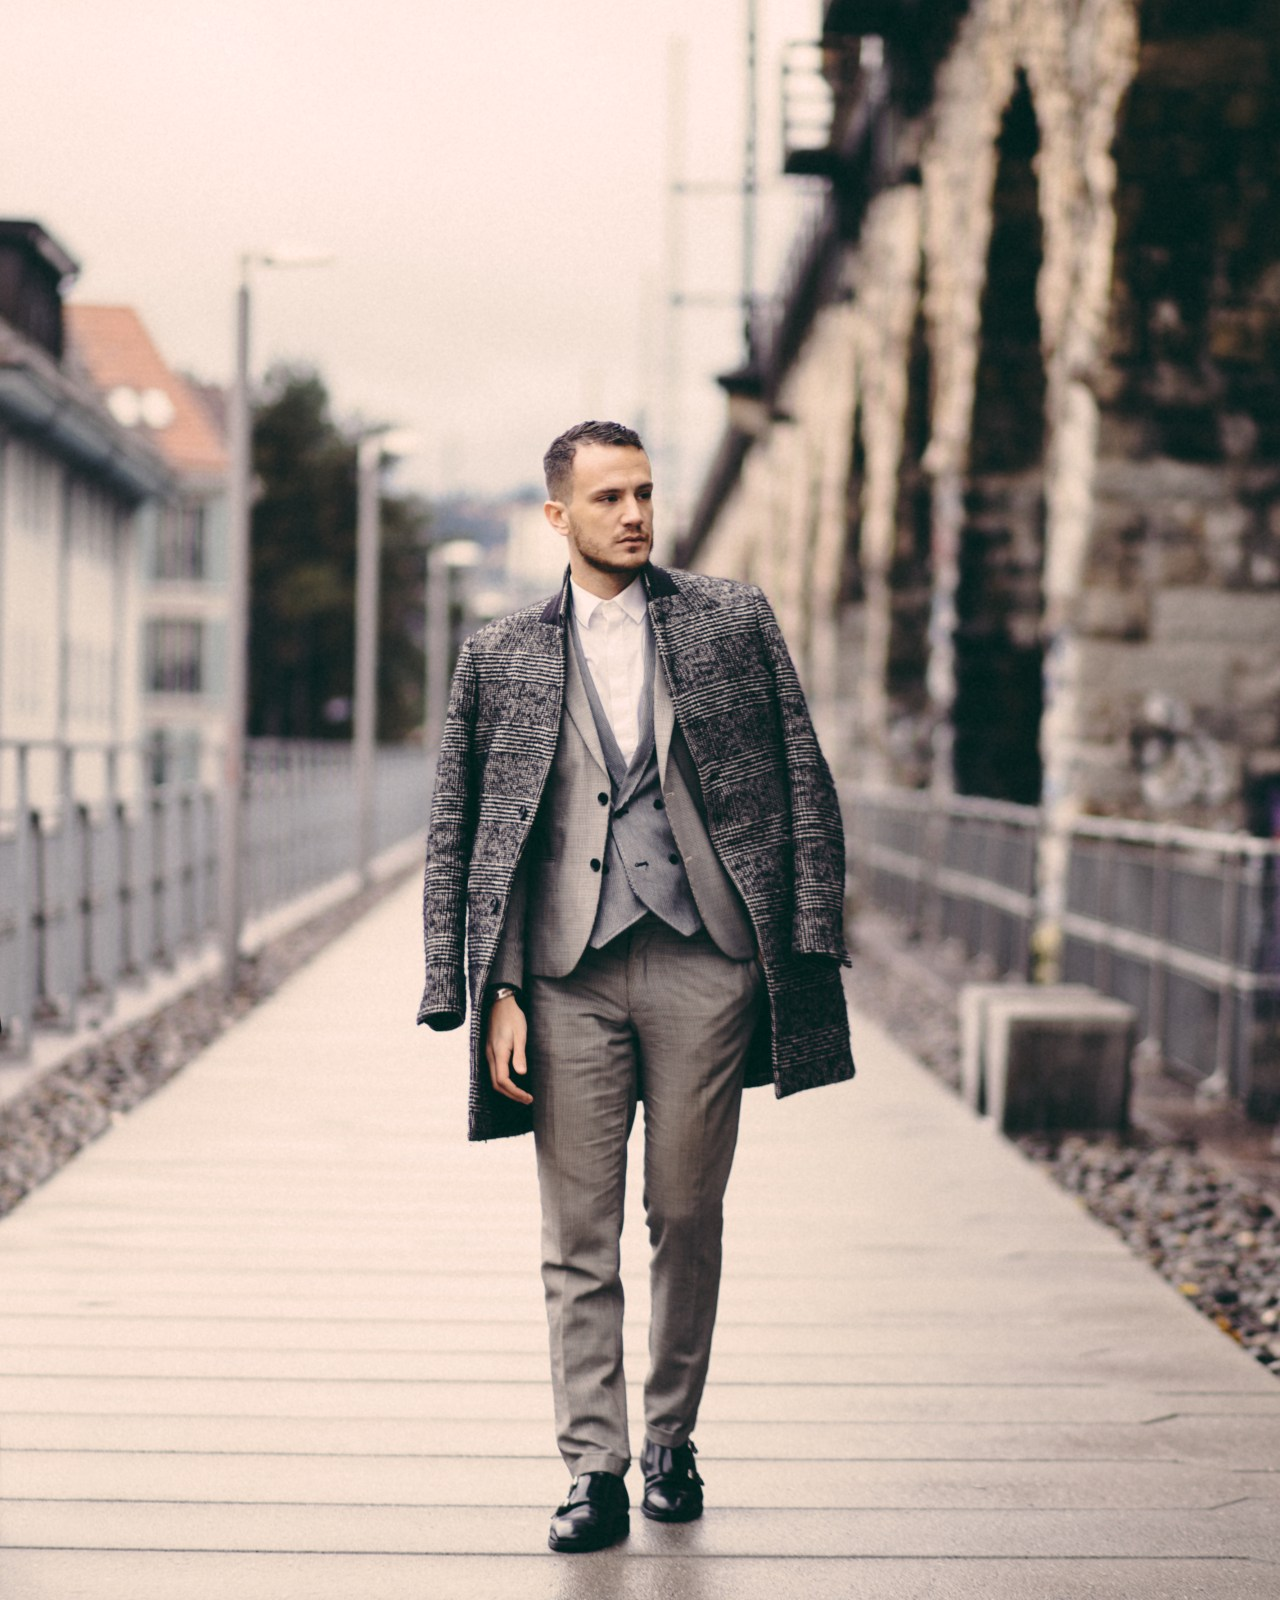 zurich viadukt streetstyle winter prince of wales check coat